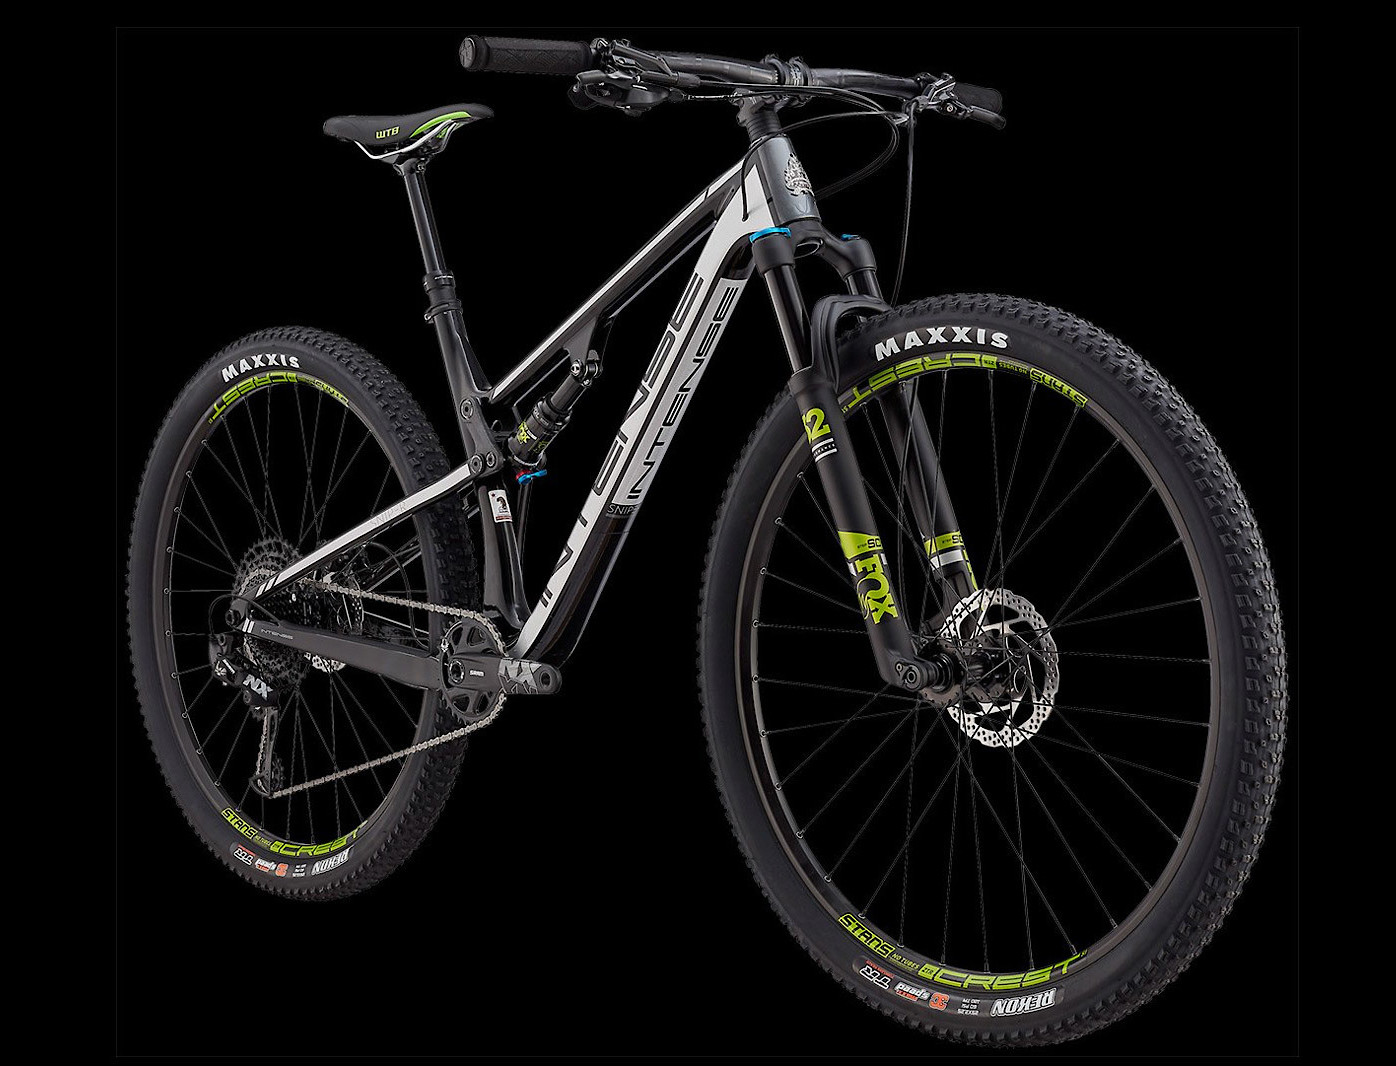 2018 Intense Sniper XC Foundation Bike